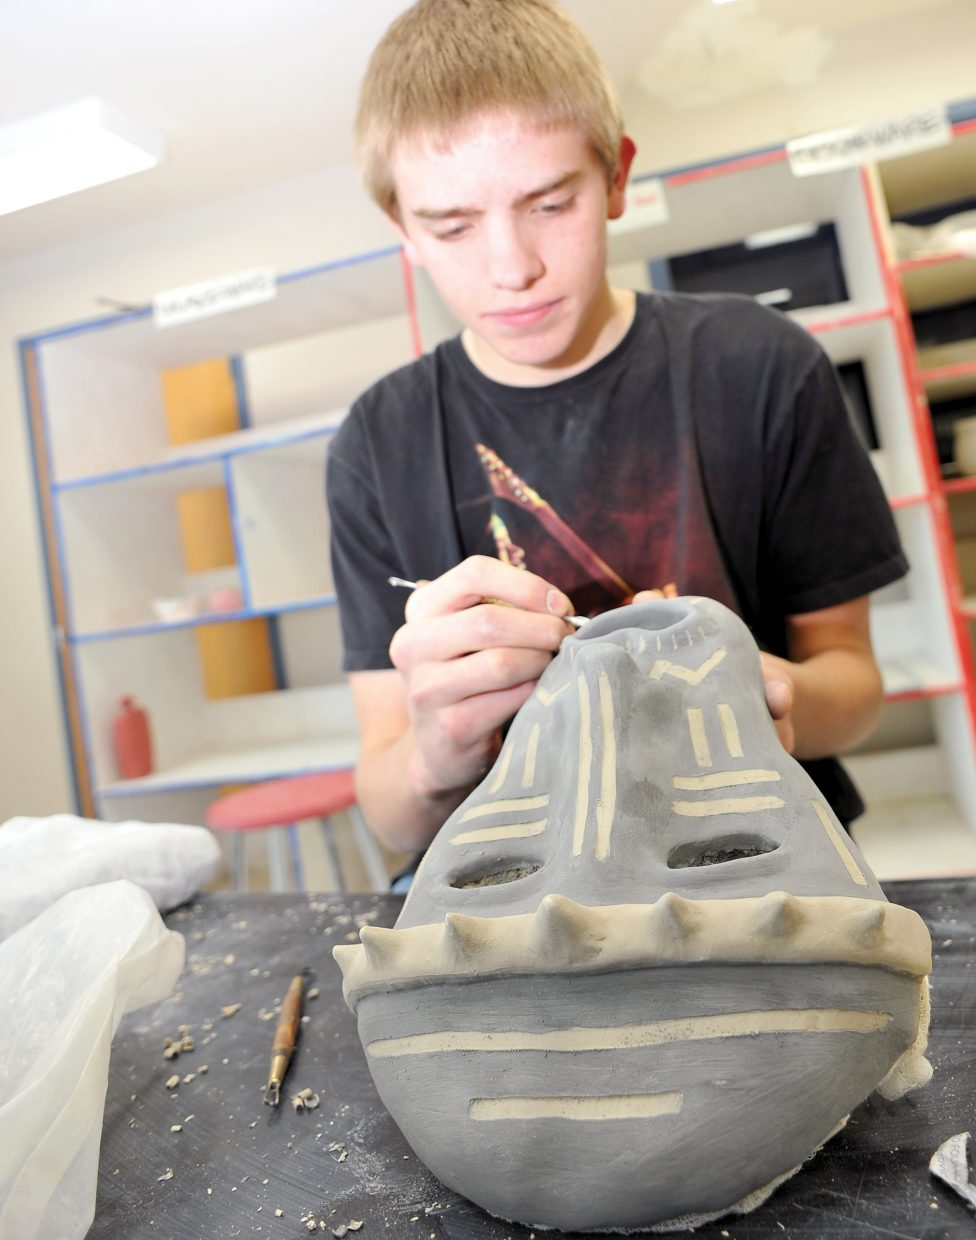 Freshman Andrew Sabia works on a mask project Wednesday during an art class at Steamboat Springs High School. A memorial fund recently established for the late Jack Finney through the Yampa Valley Community Foundation will grant some funds to the high school to help build a permanent art display in the lobby.